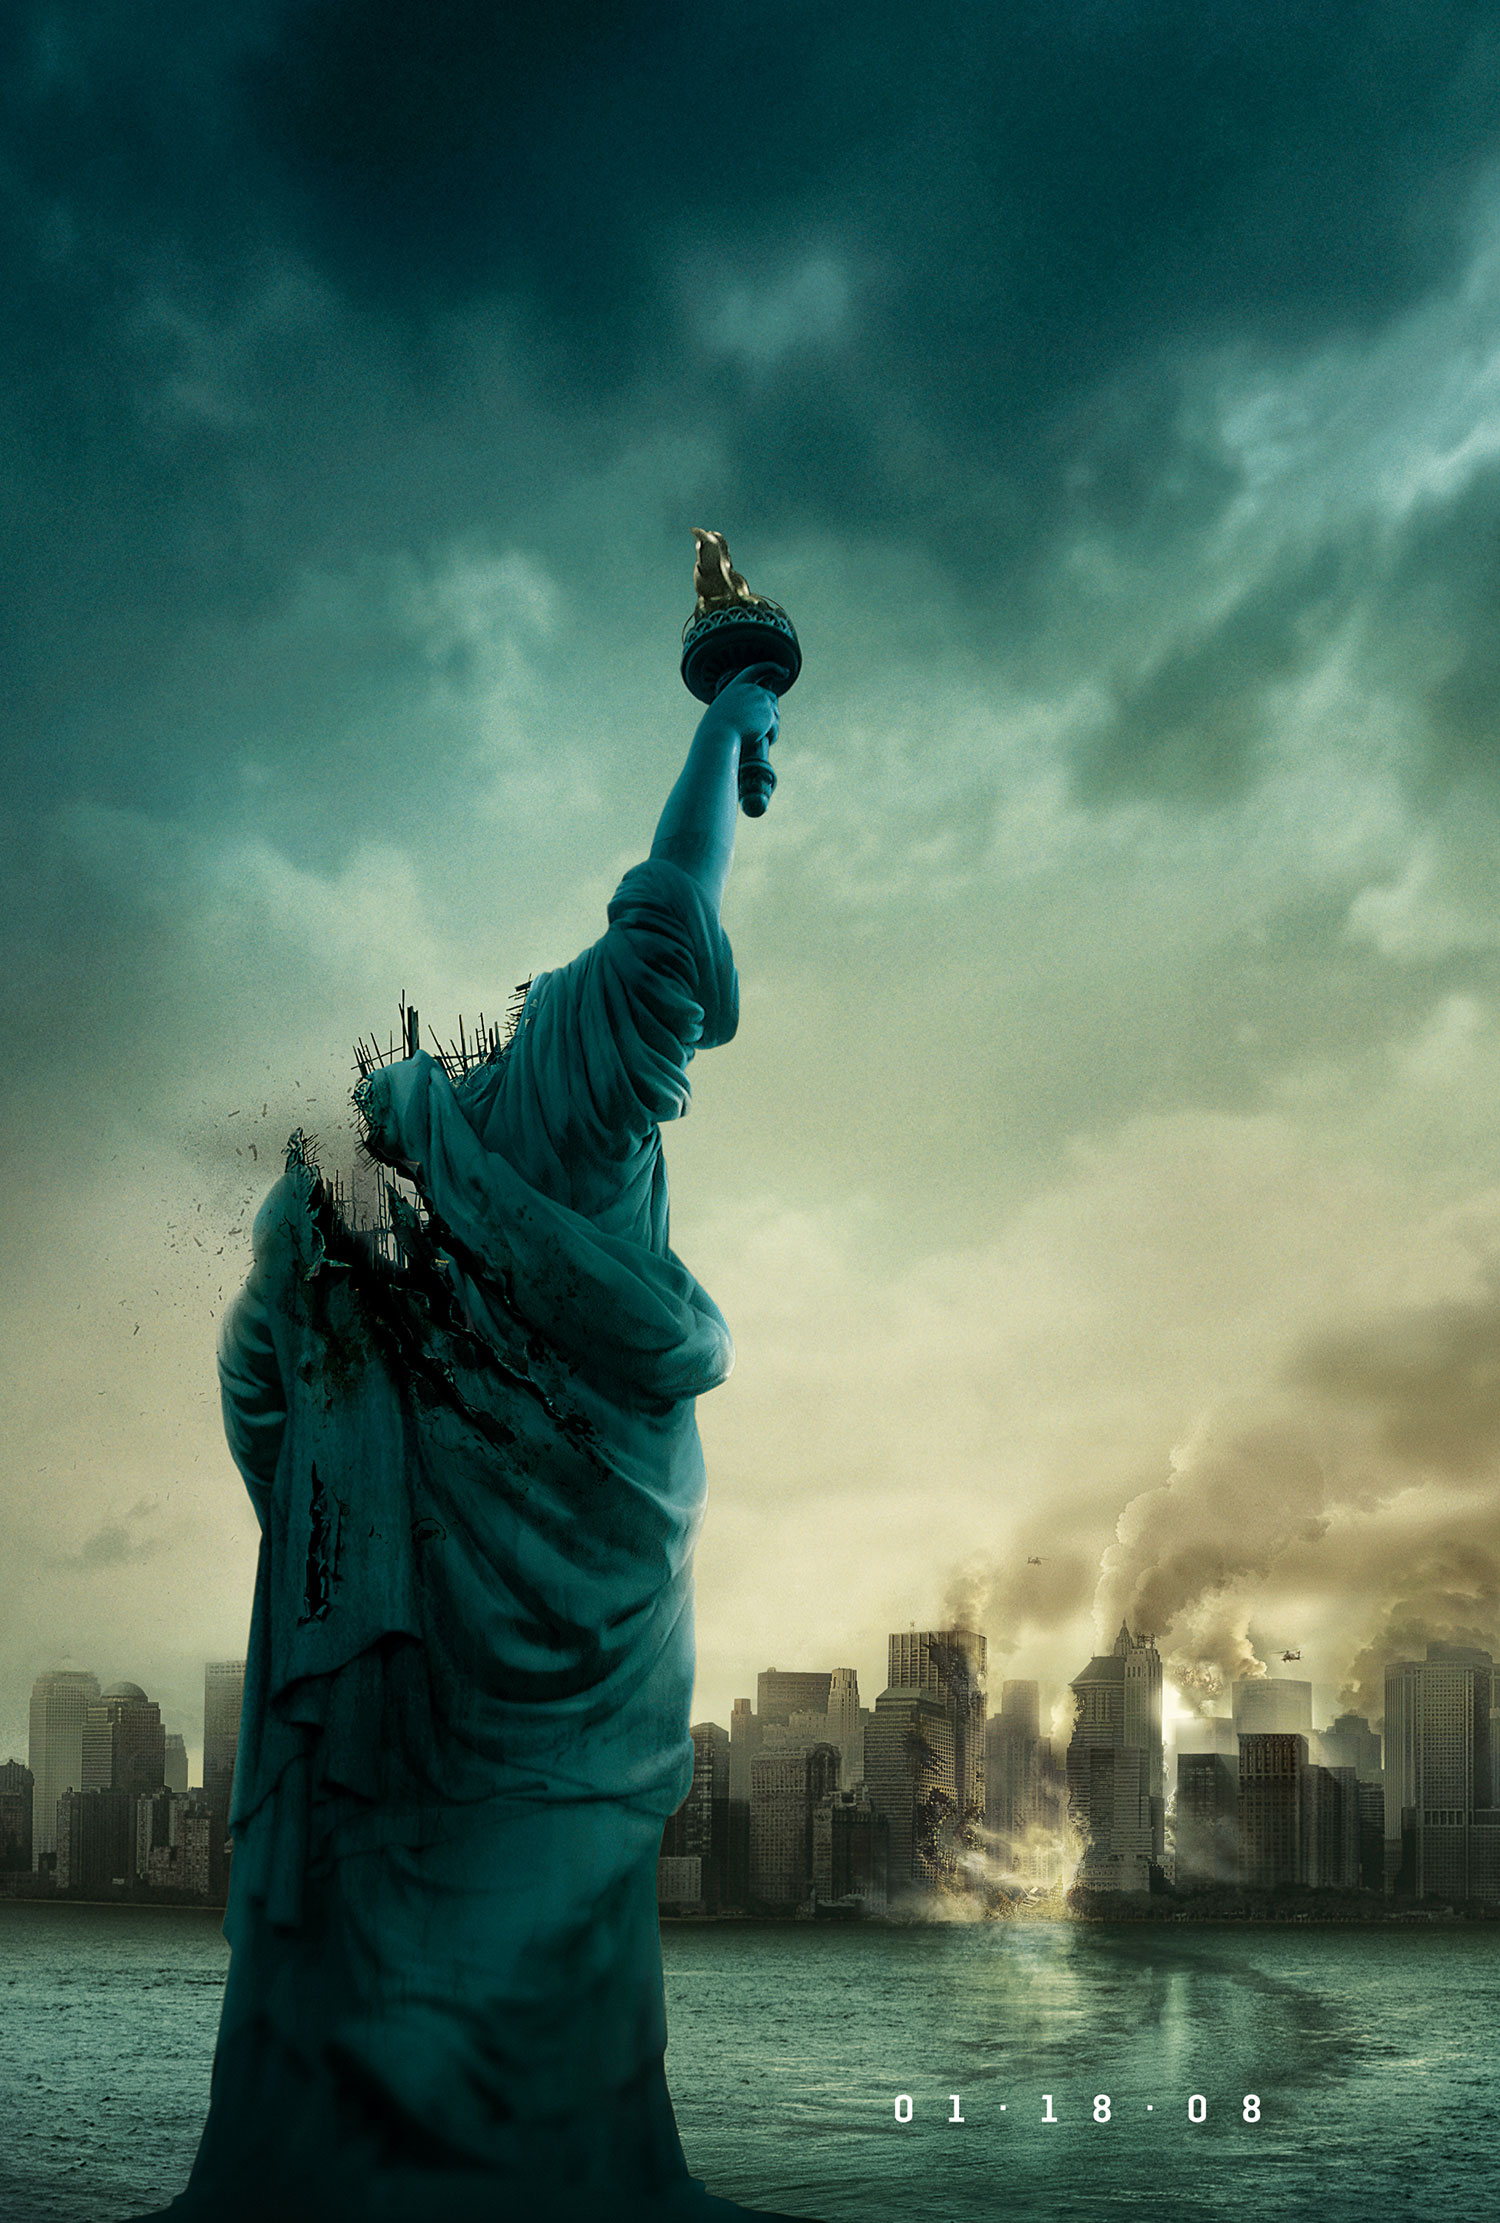 1.18.08 movie poster JJ Abrams untitled monster movie Cloverfield